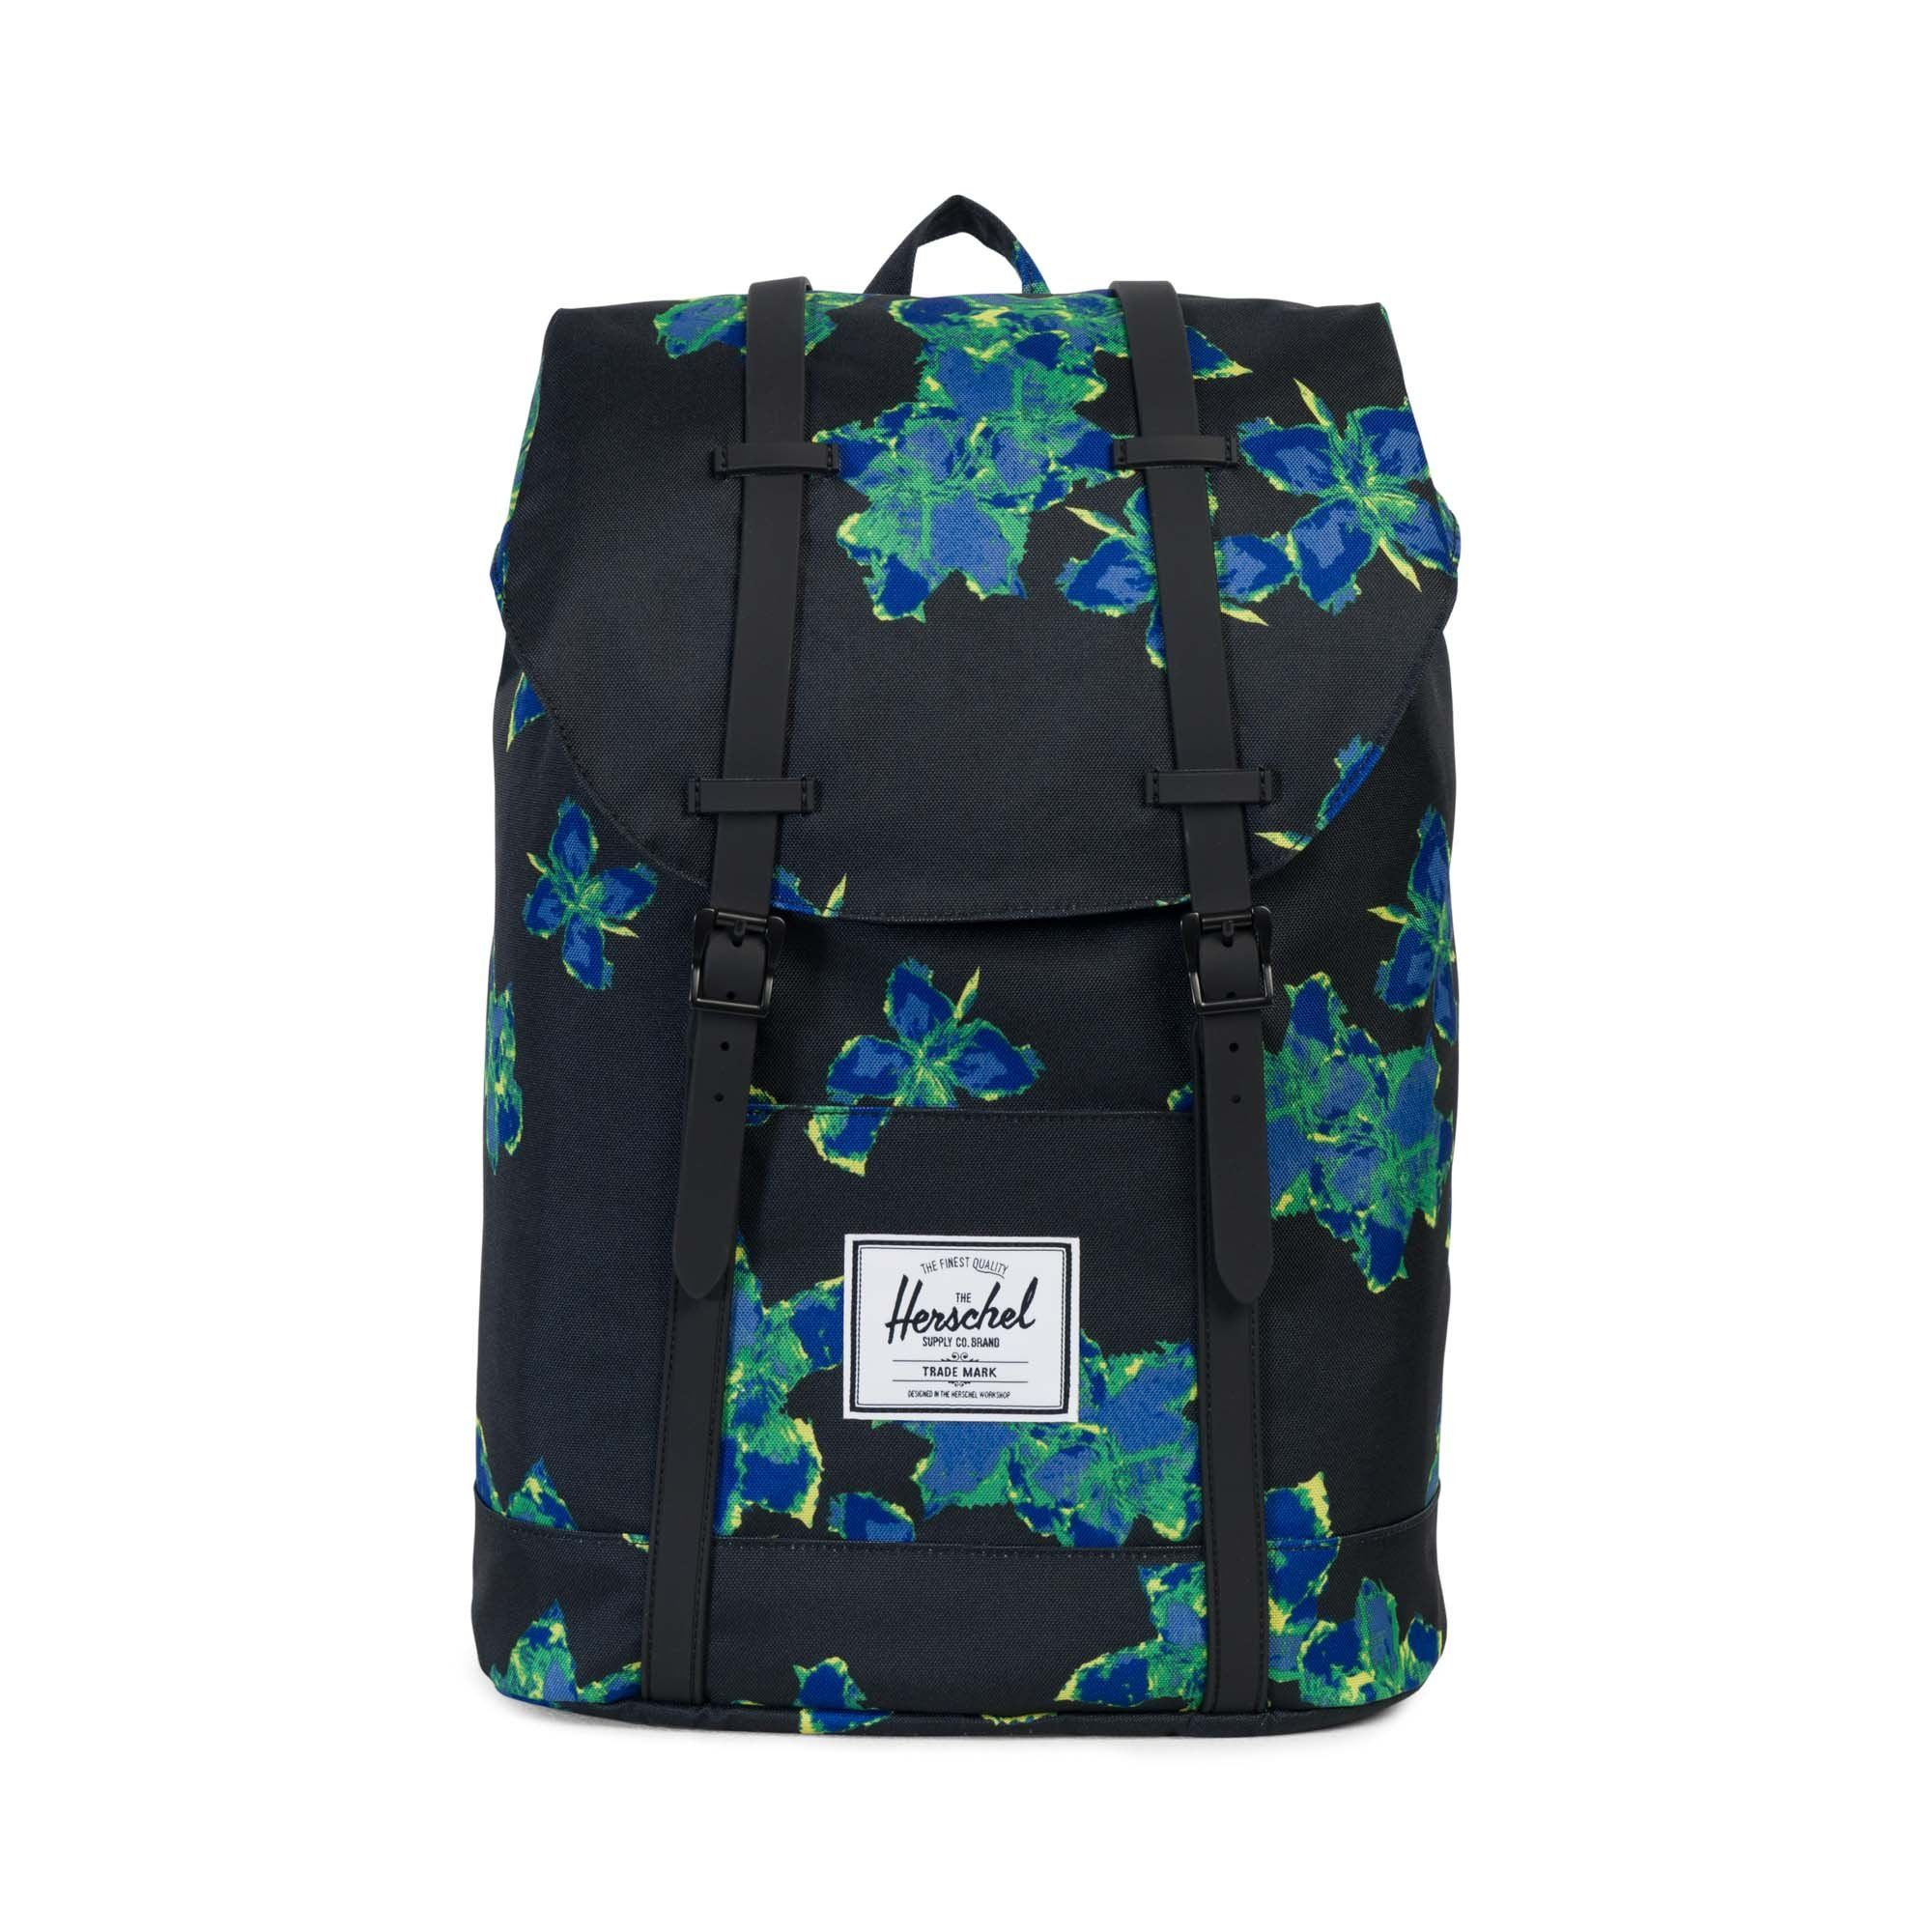 376e5b75cf Herschel Supply Co. Heritage Youth Backpack